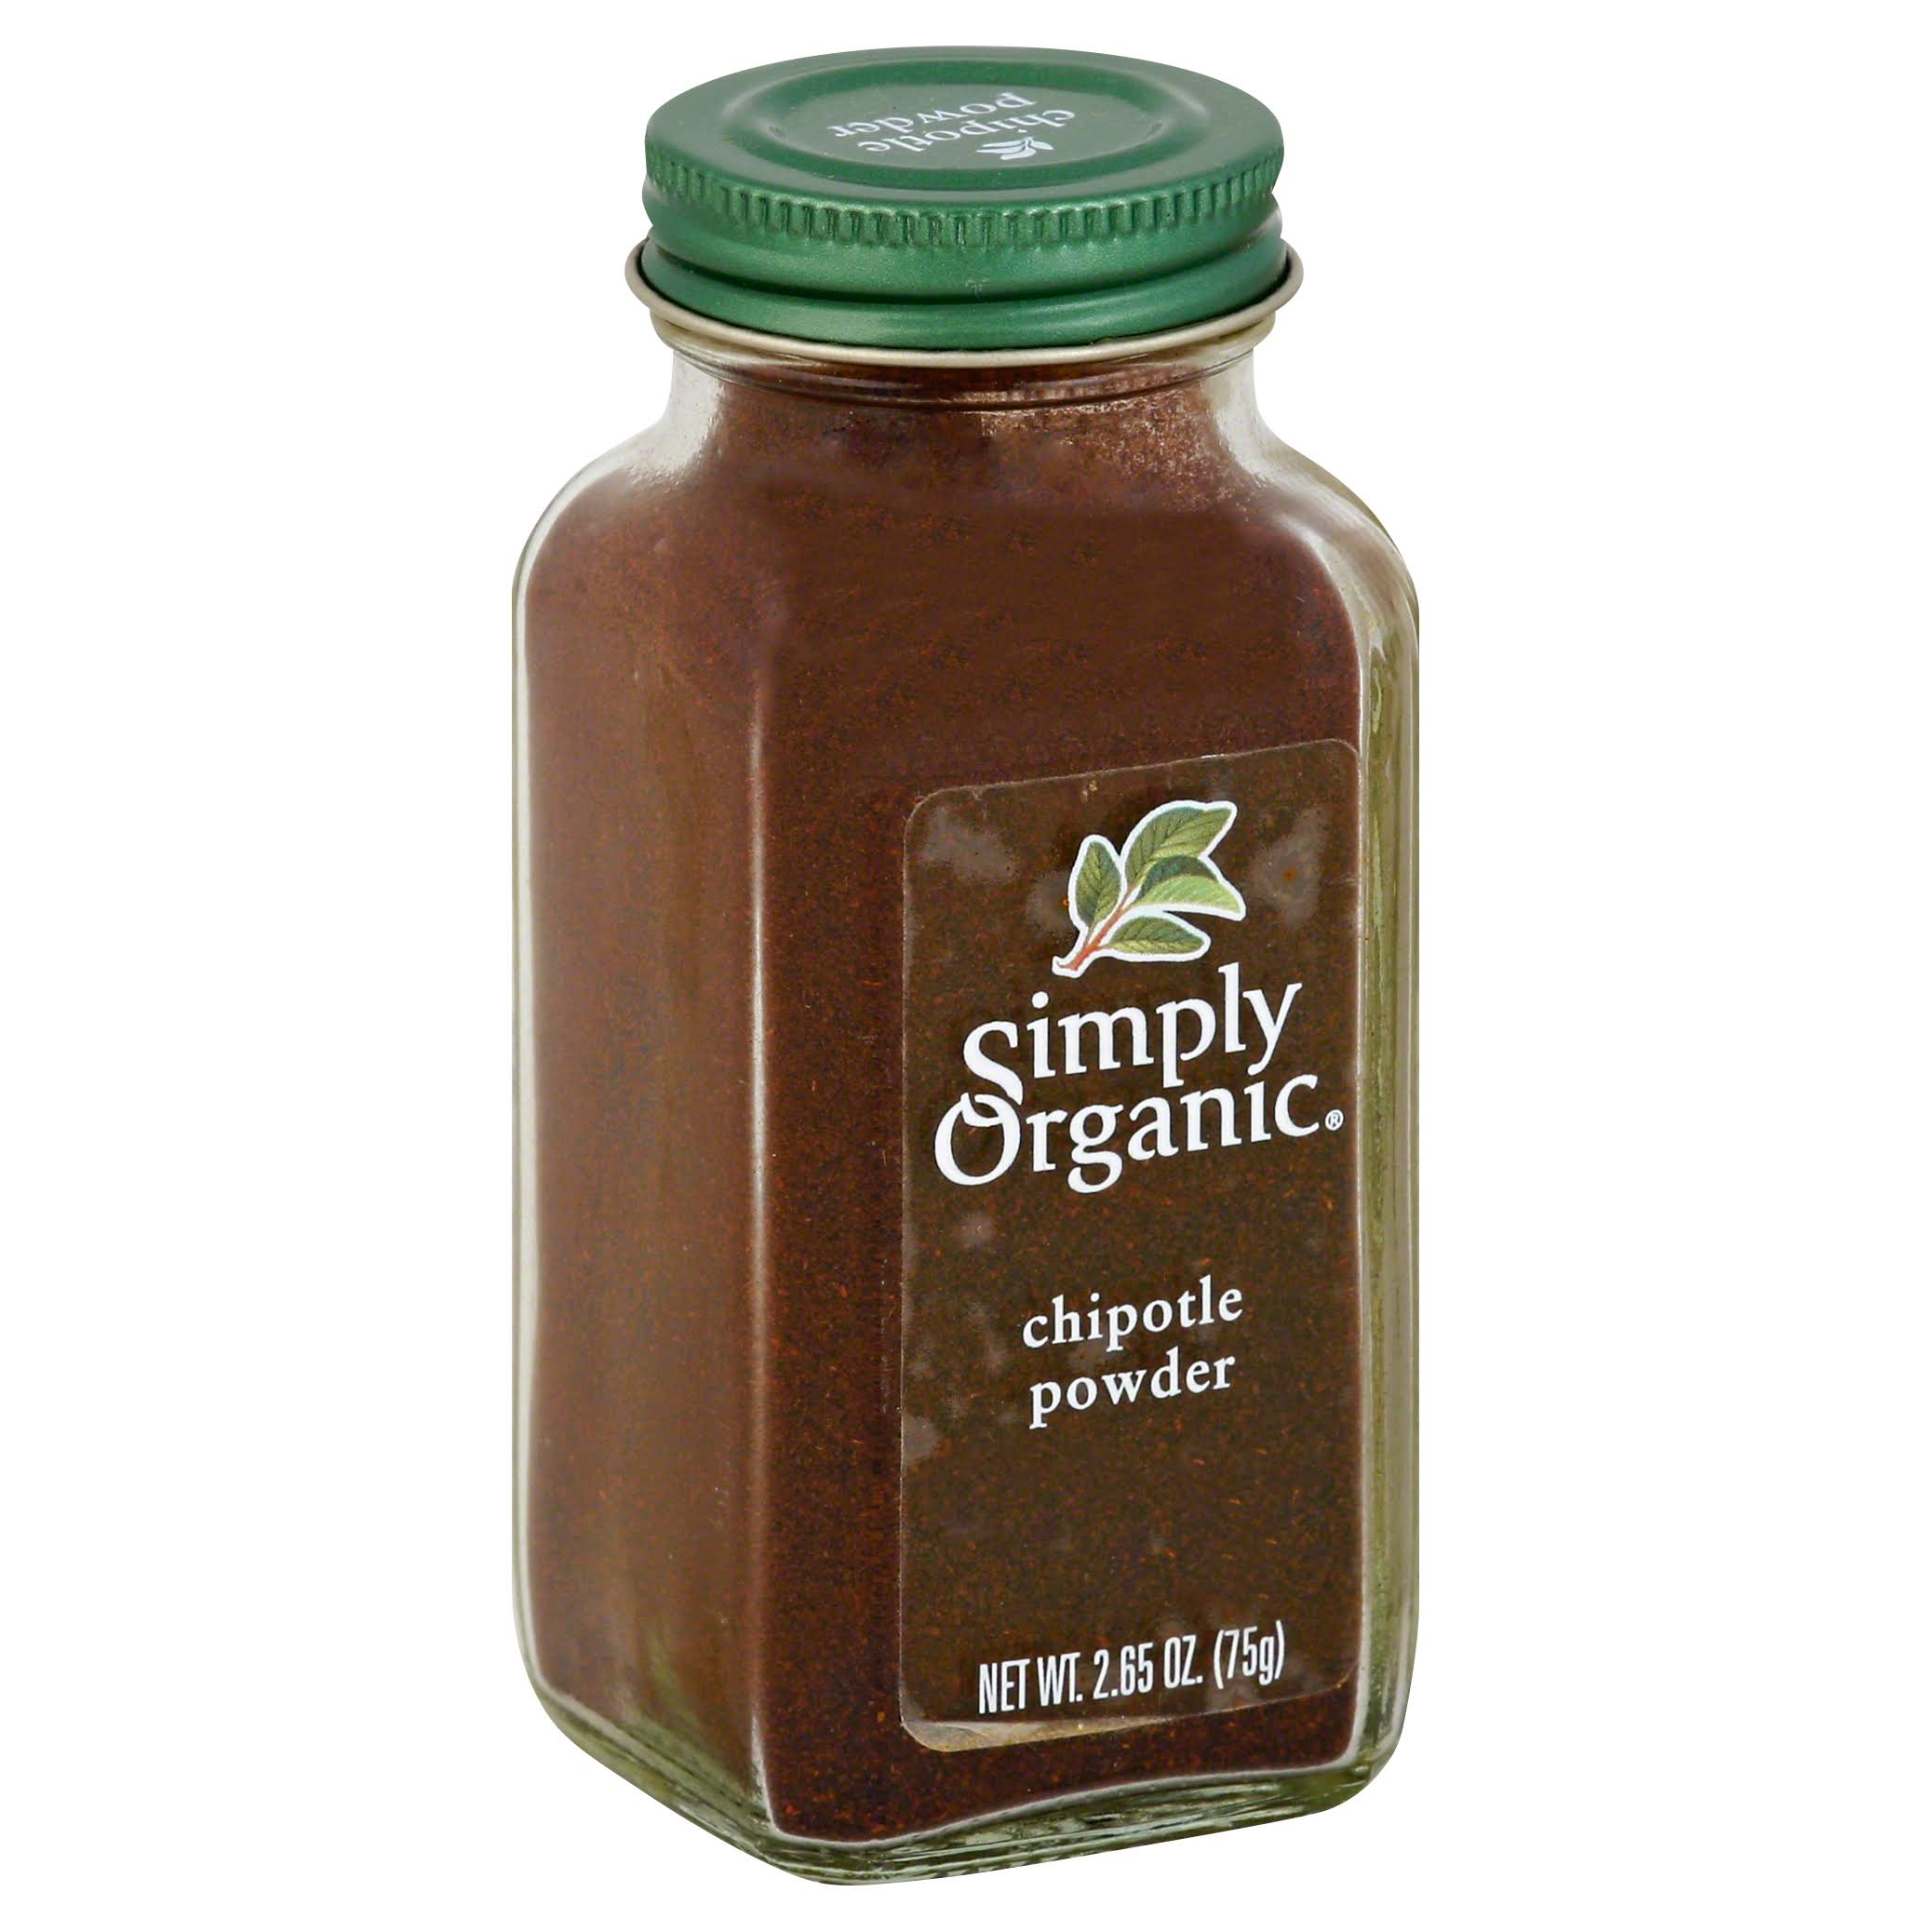 Simply Organic Powder - Chipotle, 75g